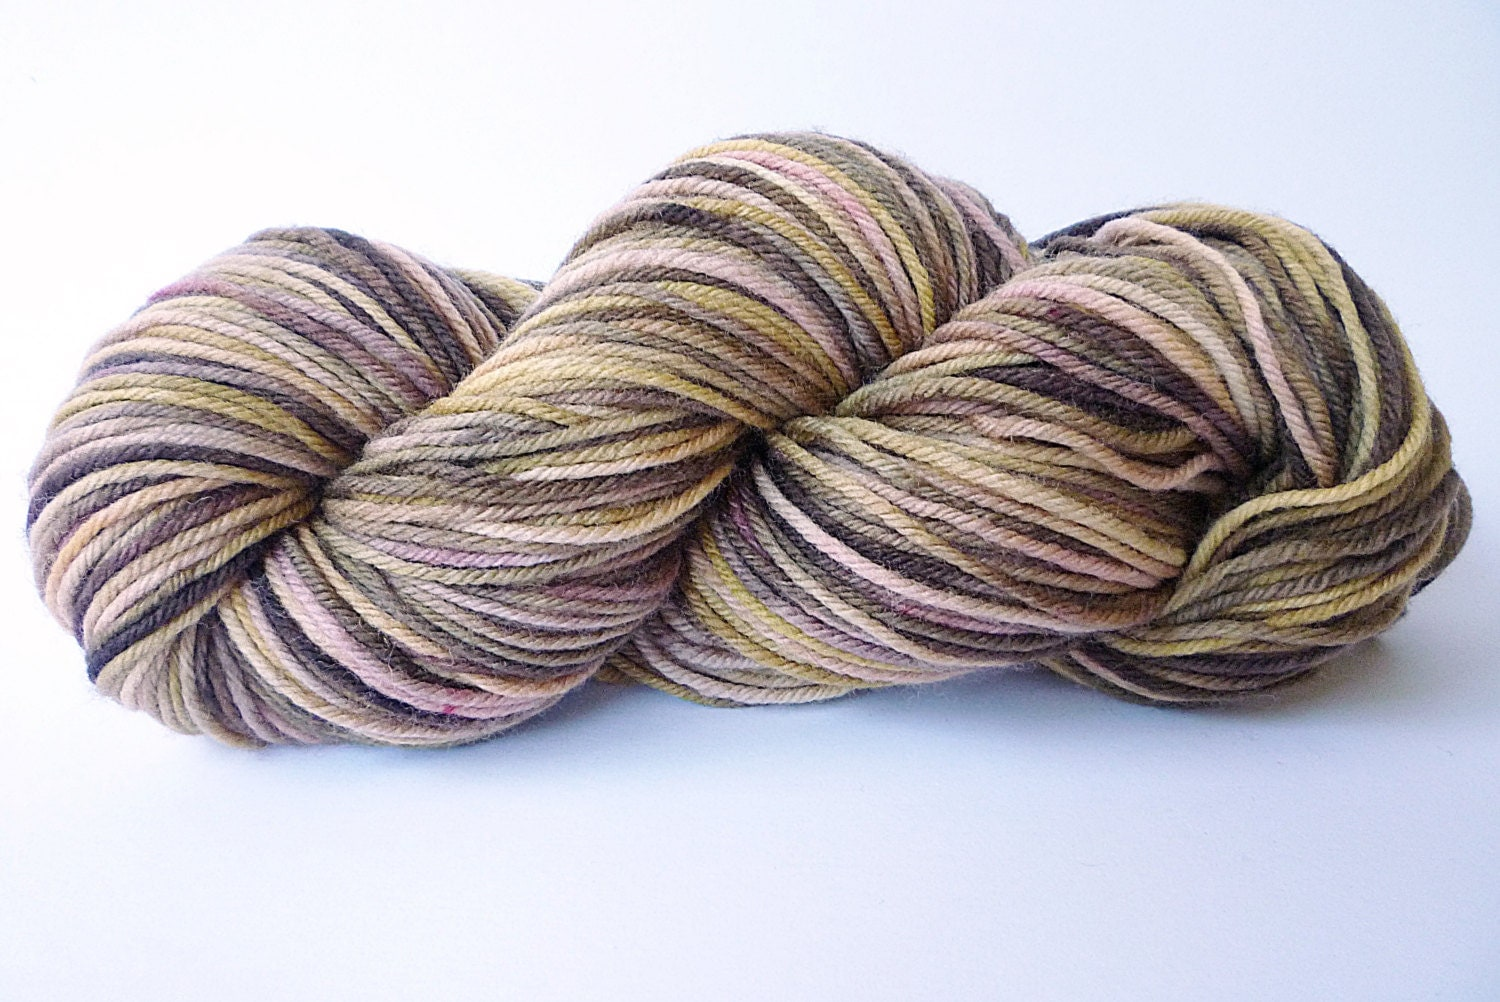 Worsted Weight Yarn : Hand Dyed Yarn Worsted Weight Yarn Superwash by IriaYarnCompany